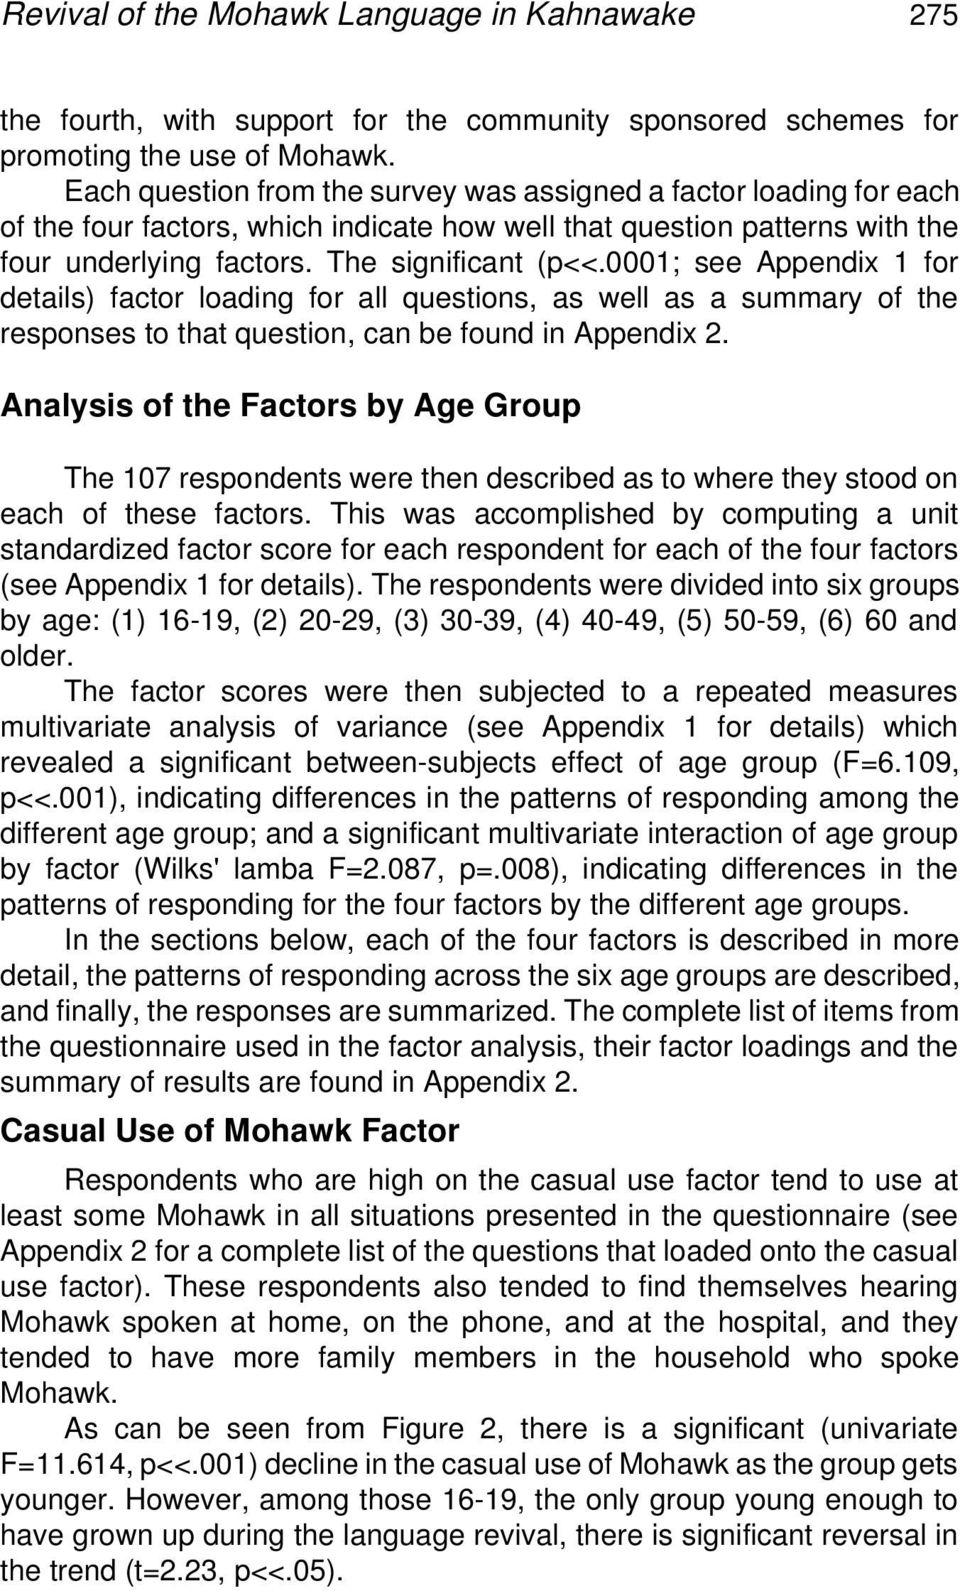 0001; see Appendix 1 for details) factor loading for all questions, as well as a summary of the responses to that question, can be found in Appendix 2.